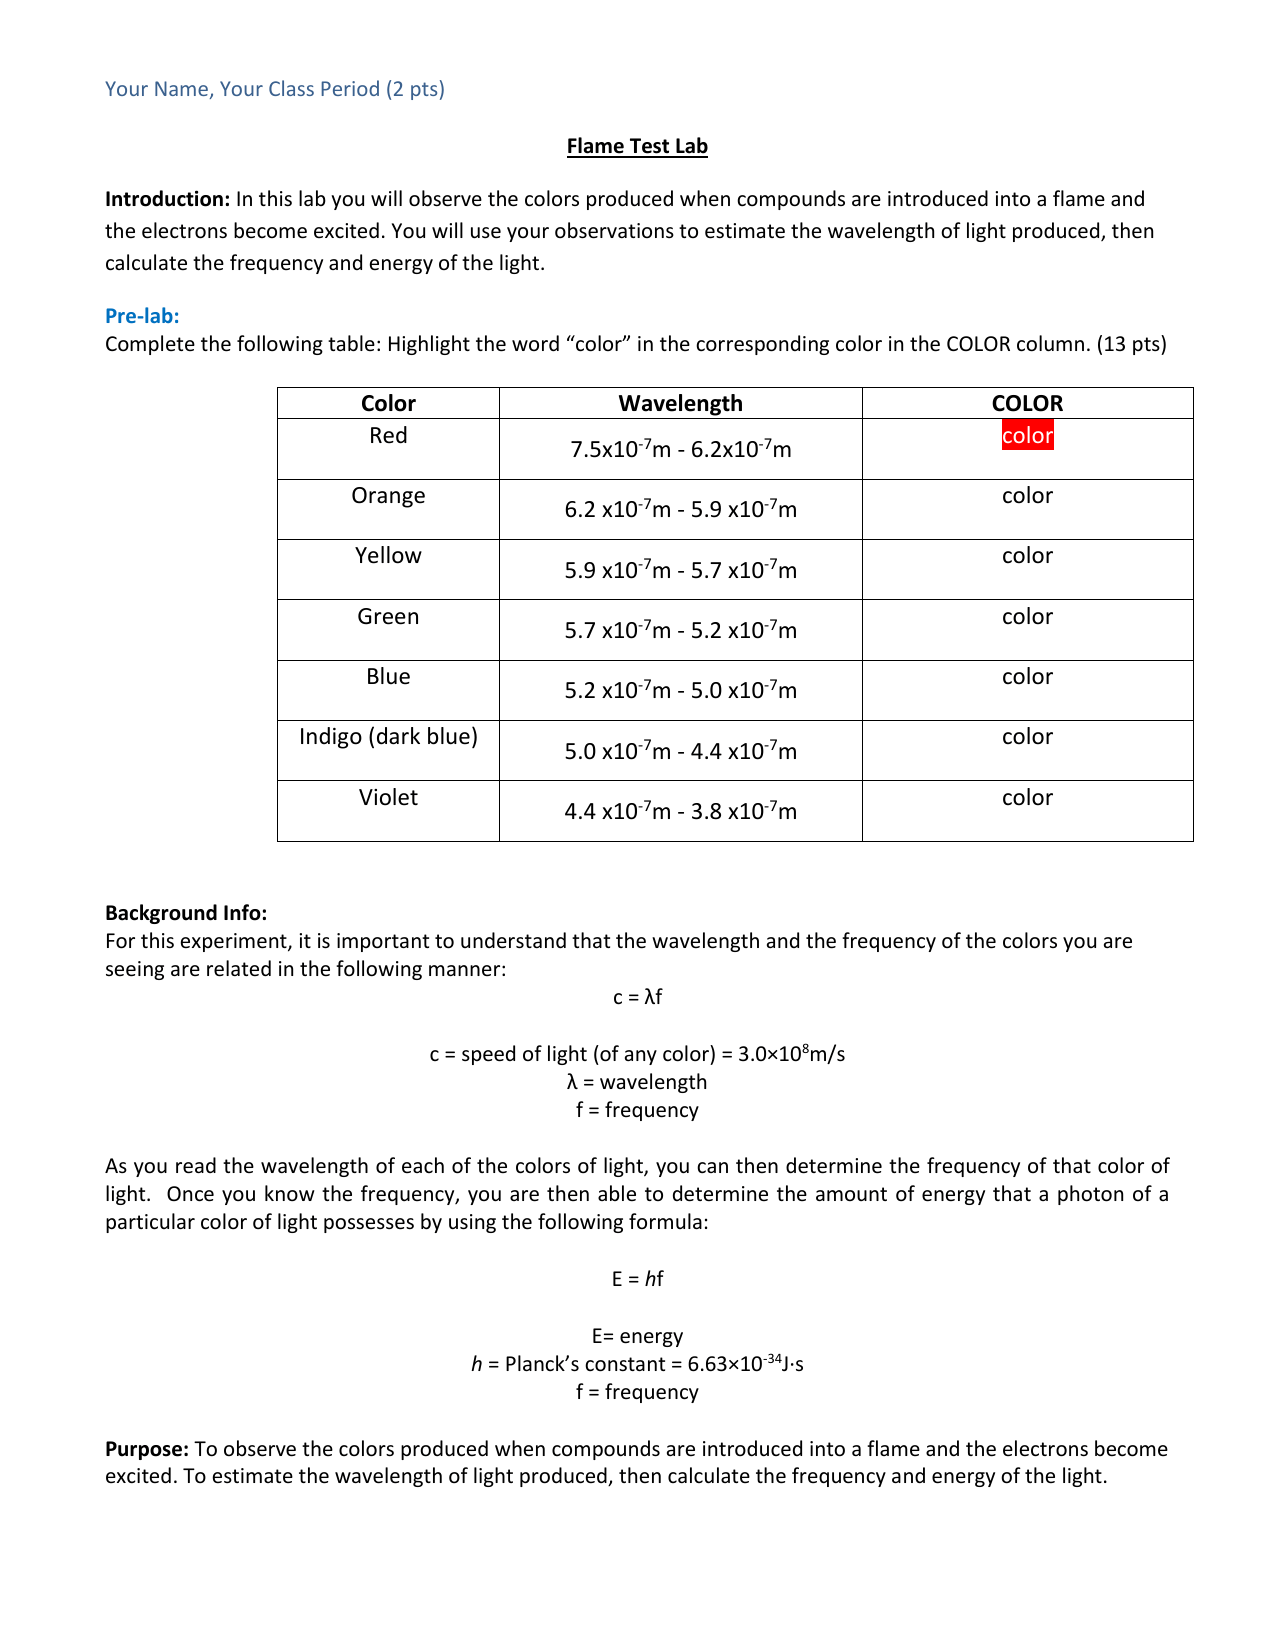 2nd 6wk Flame Test Template